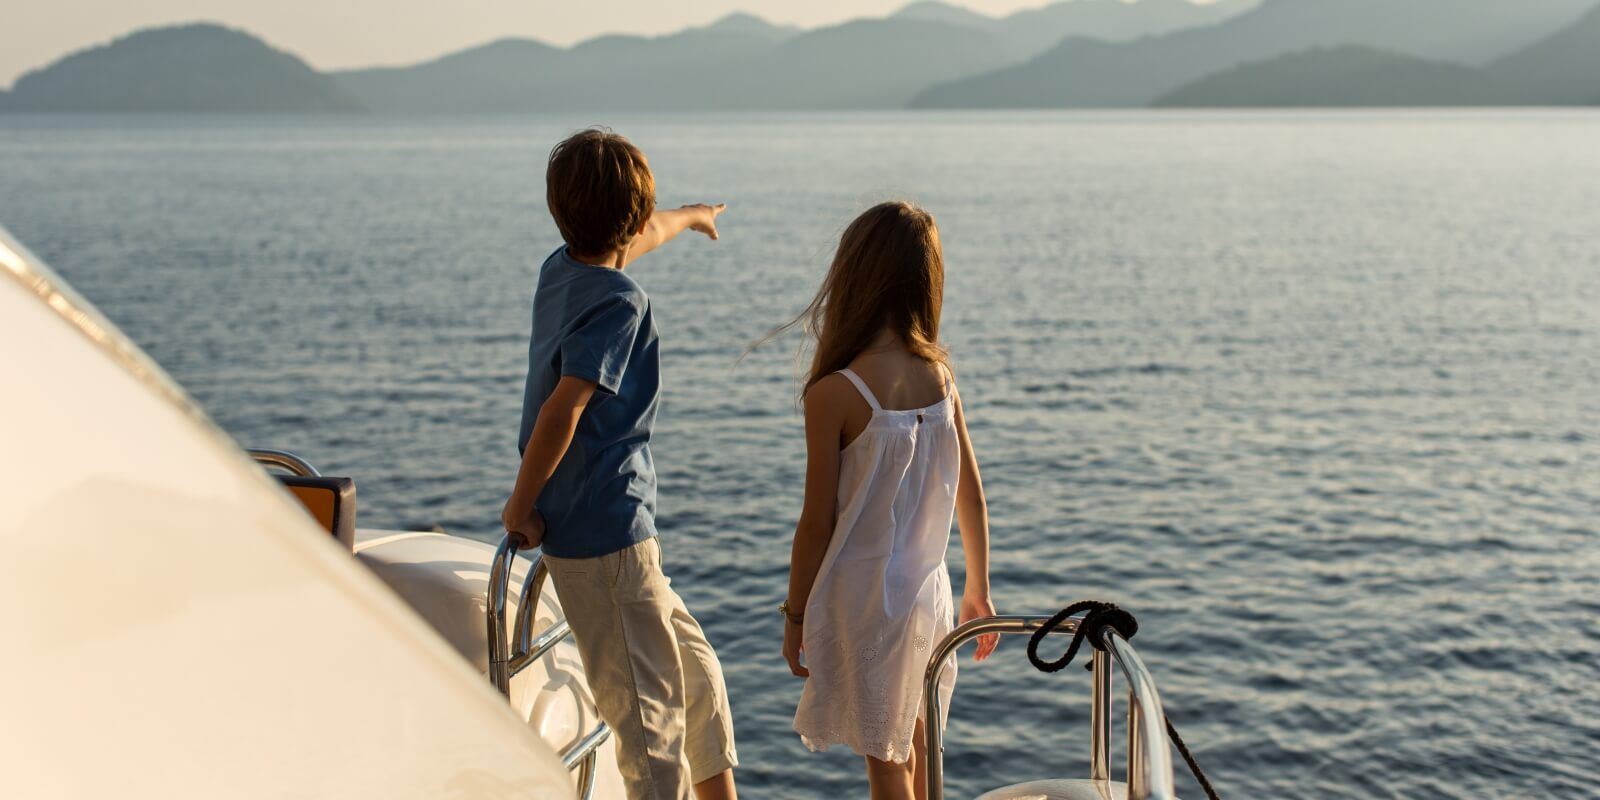 https://www.talamare.com/medias/Kids looking at the sea from a charter yacht with their parents on the aft deck